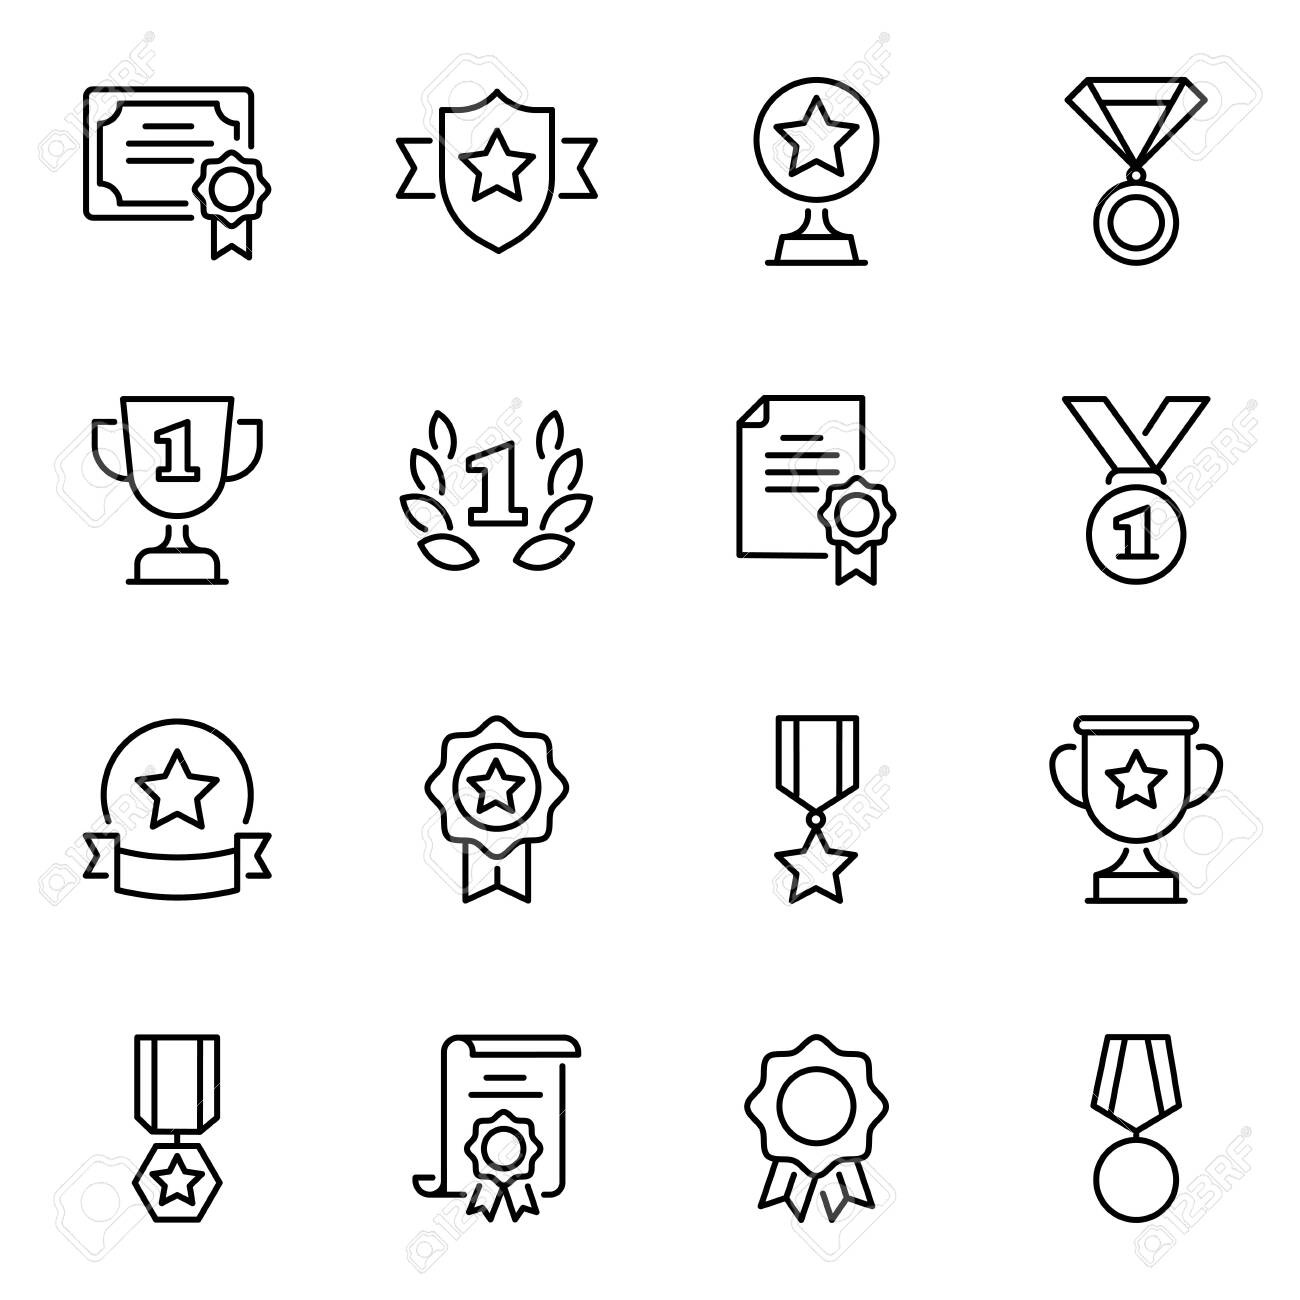 Awards and prizes thin line icons set. Certificates and trophies linear symbols pack. Medals of honour, rosettes with stars, ribbons and laurel wreath contour pictograms isolated on white background - 136442414